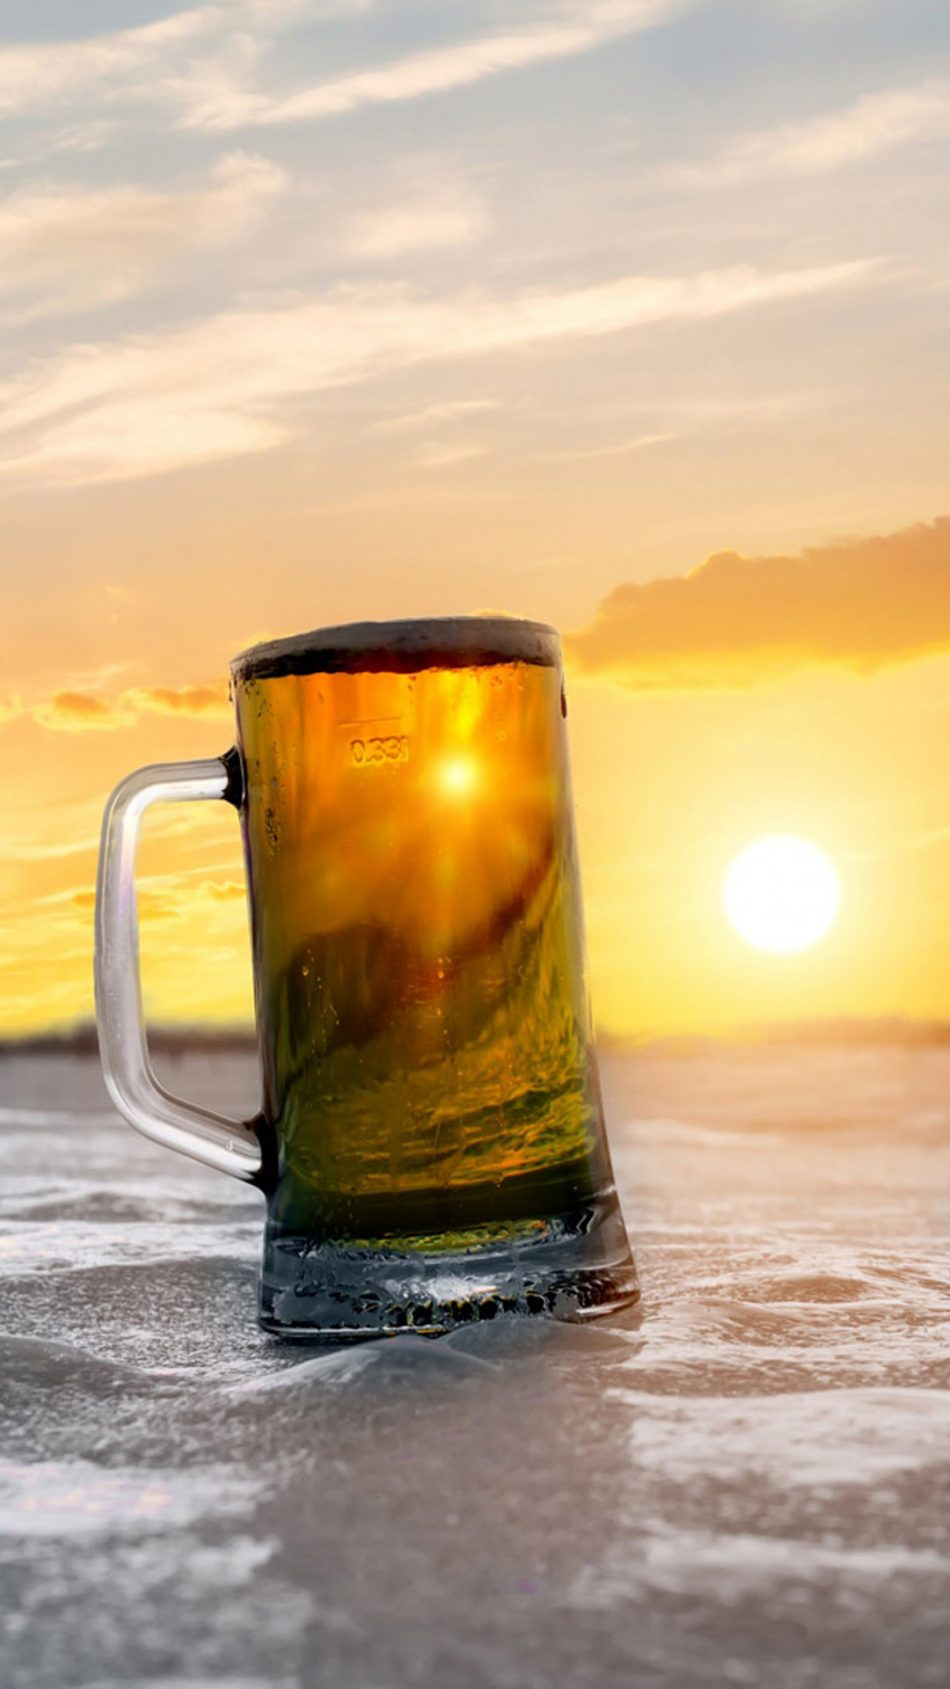 Download Beer Mug Beach Sunset Free Pure 4k Ultra Hd Mobile Wallpaper